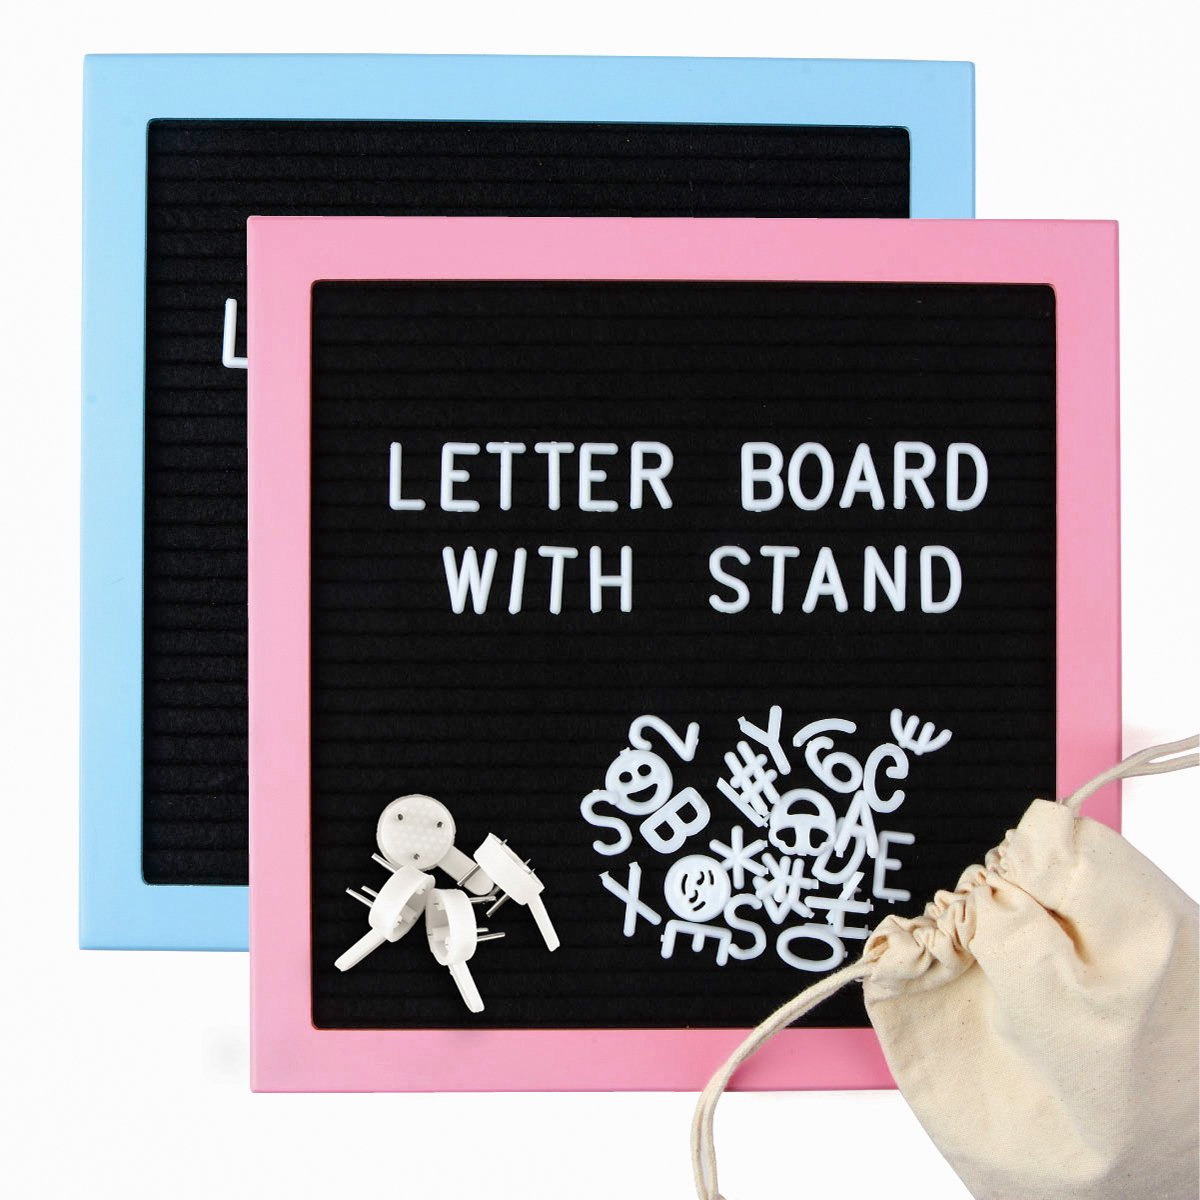 Felt Letter Boards with 680 Plastic Changeable Letters, Symbols, Numbers & Emojis in White, 10x10 Inch MFD Frame in Macaron Color, Picture Stand, Wall Mount & Drawstring Bag by PROHAPI(Blue & Pink)